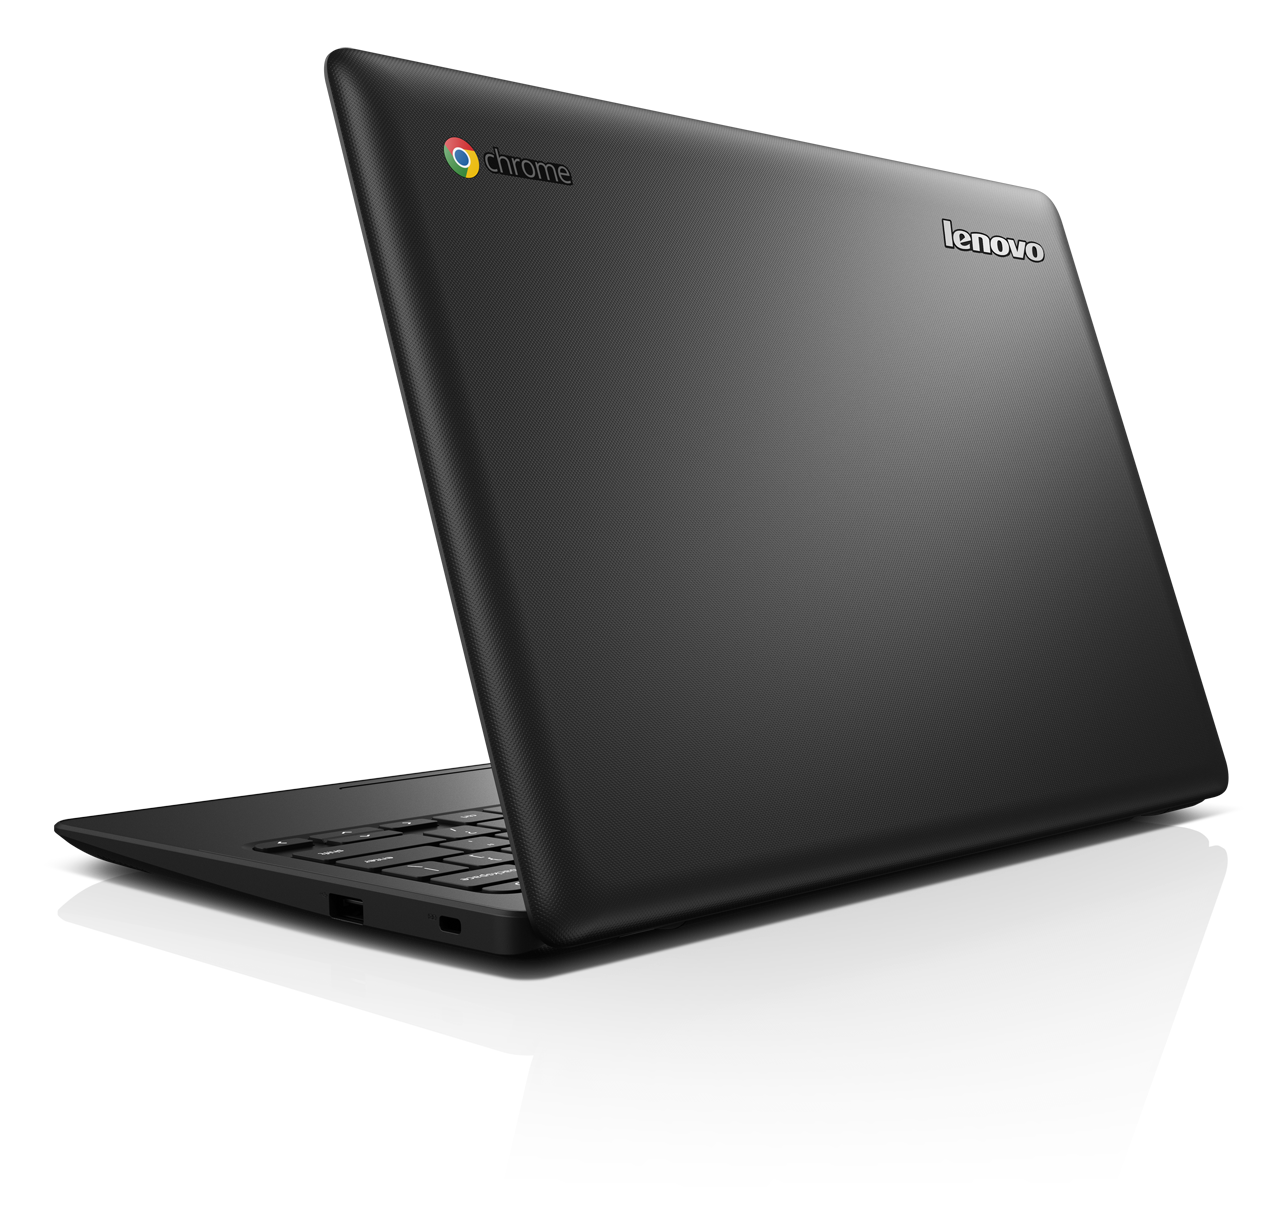 Lenovo Chromebook 100s Is Beautiful And Affordable